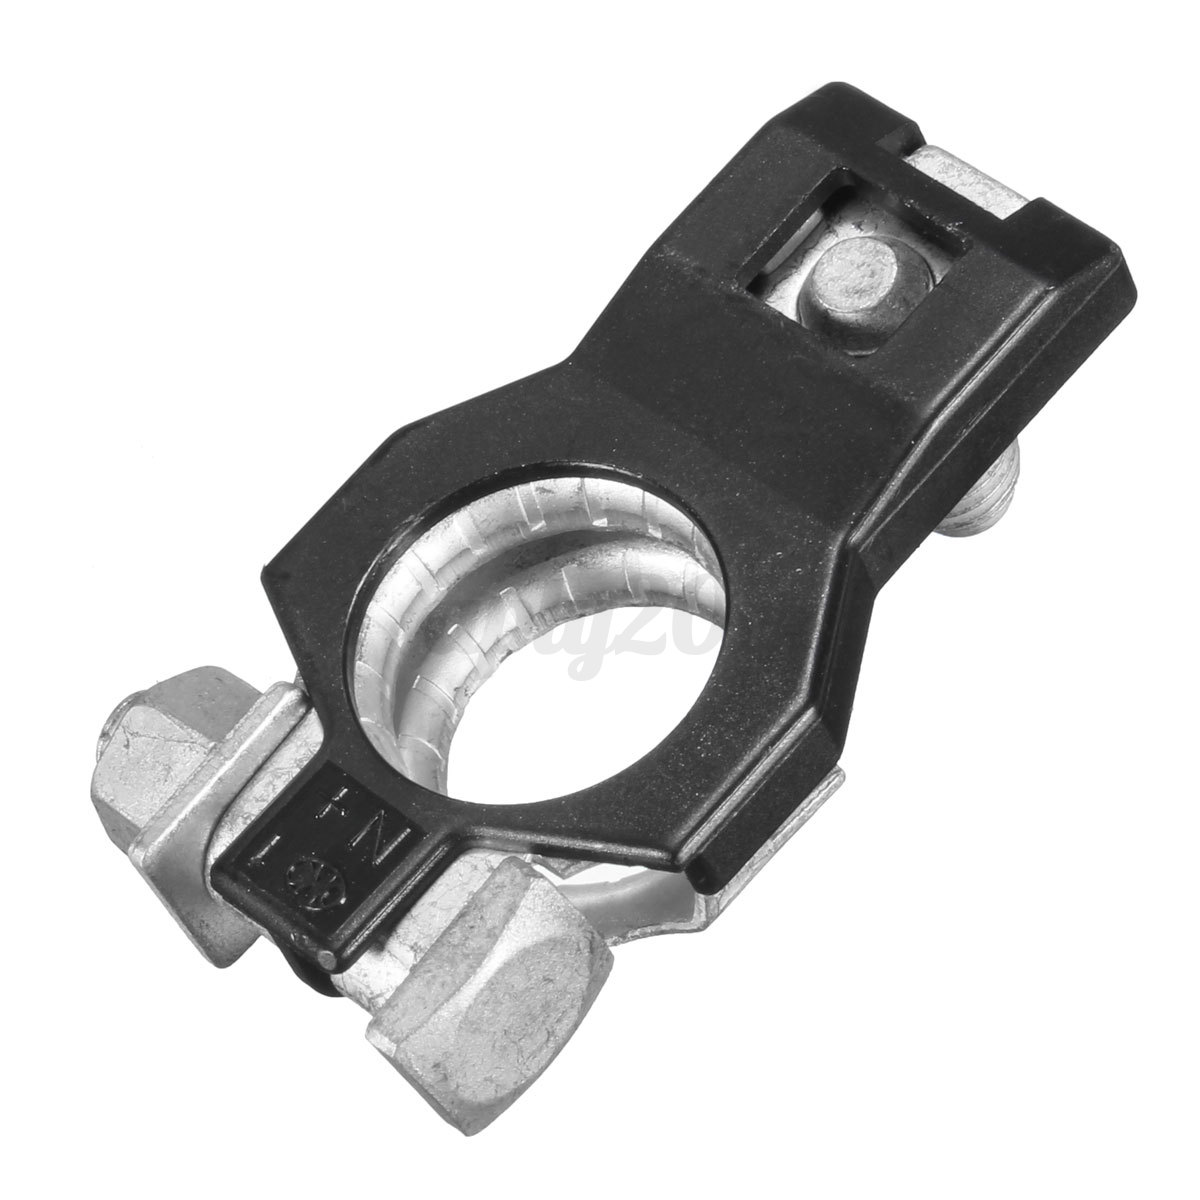 Toyota Battery Terminal: Positive Battery Terminal Clamp Assembly Fit Toyota Lexus